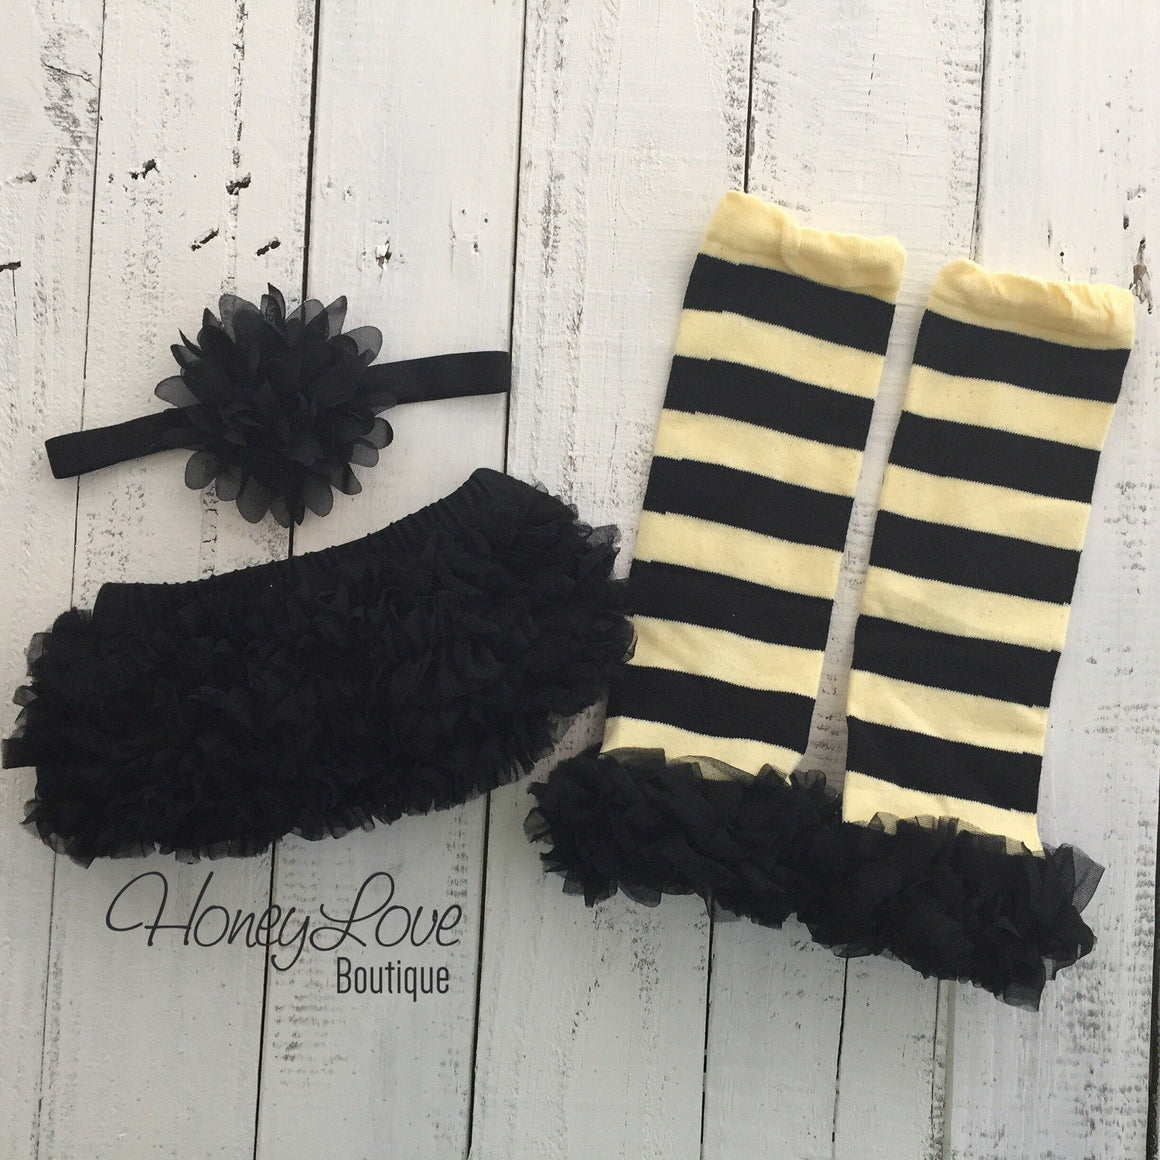 Yellow and Black Bumble Bee leg warmers, black ruffle bottom bloomer, matching flower headband